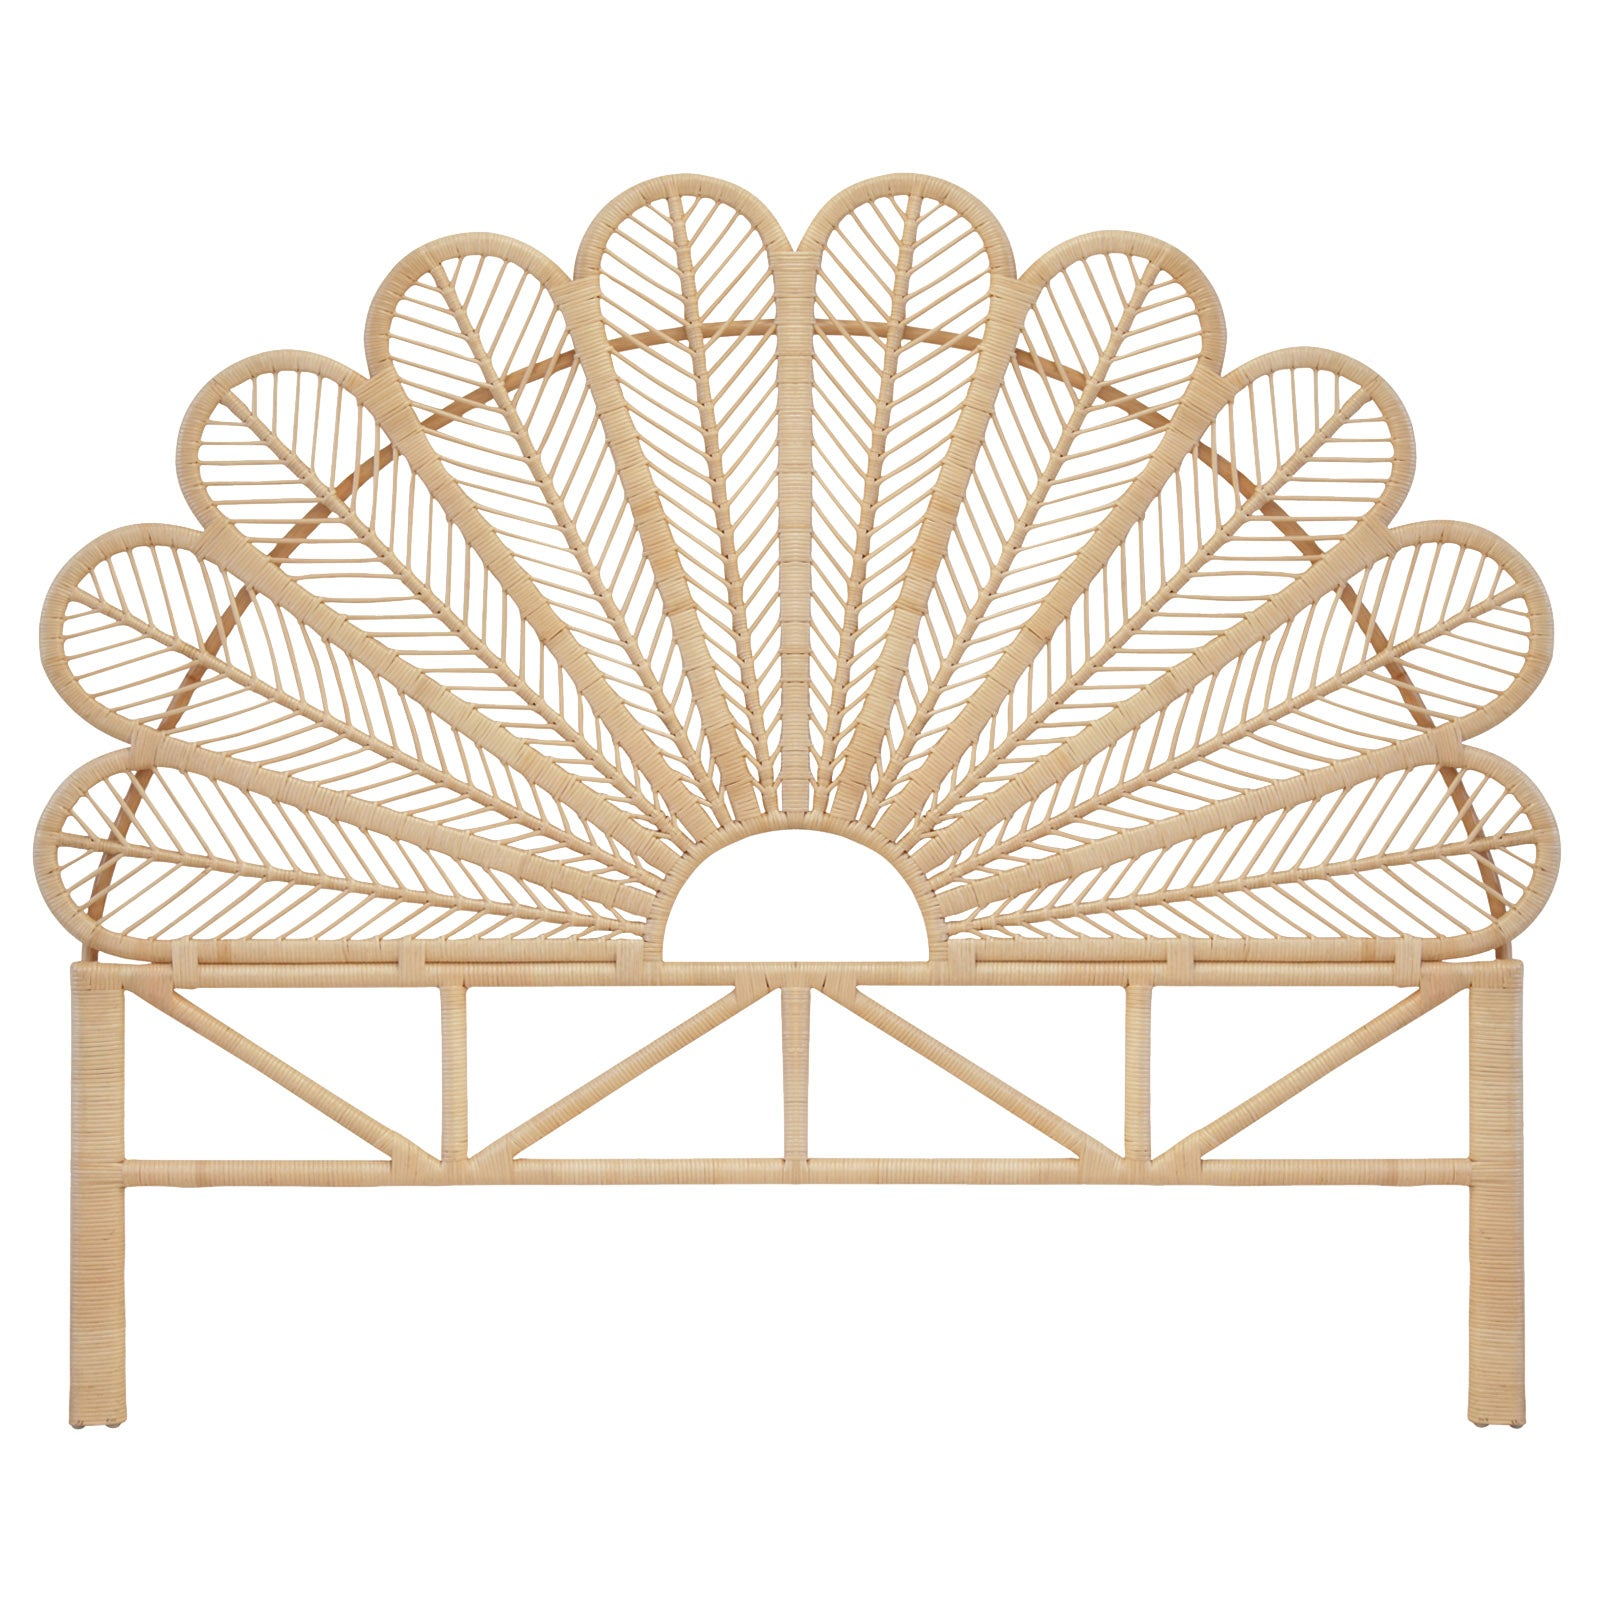 Daisy Natural Rattan Super King Bed Headboard The Rattan Company